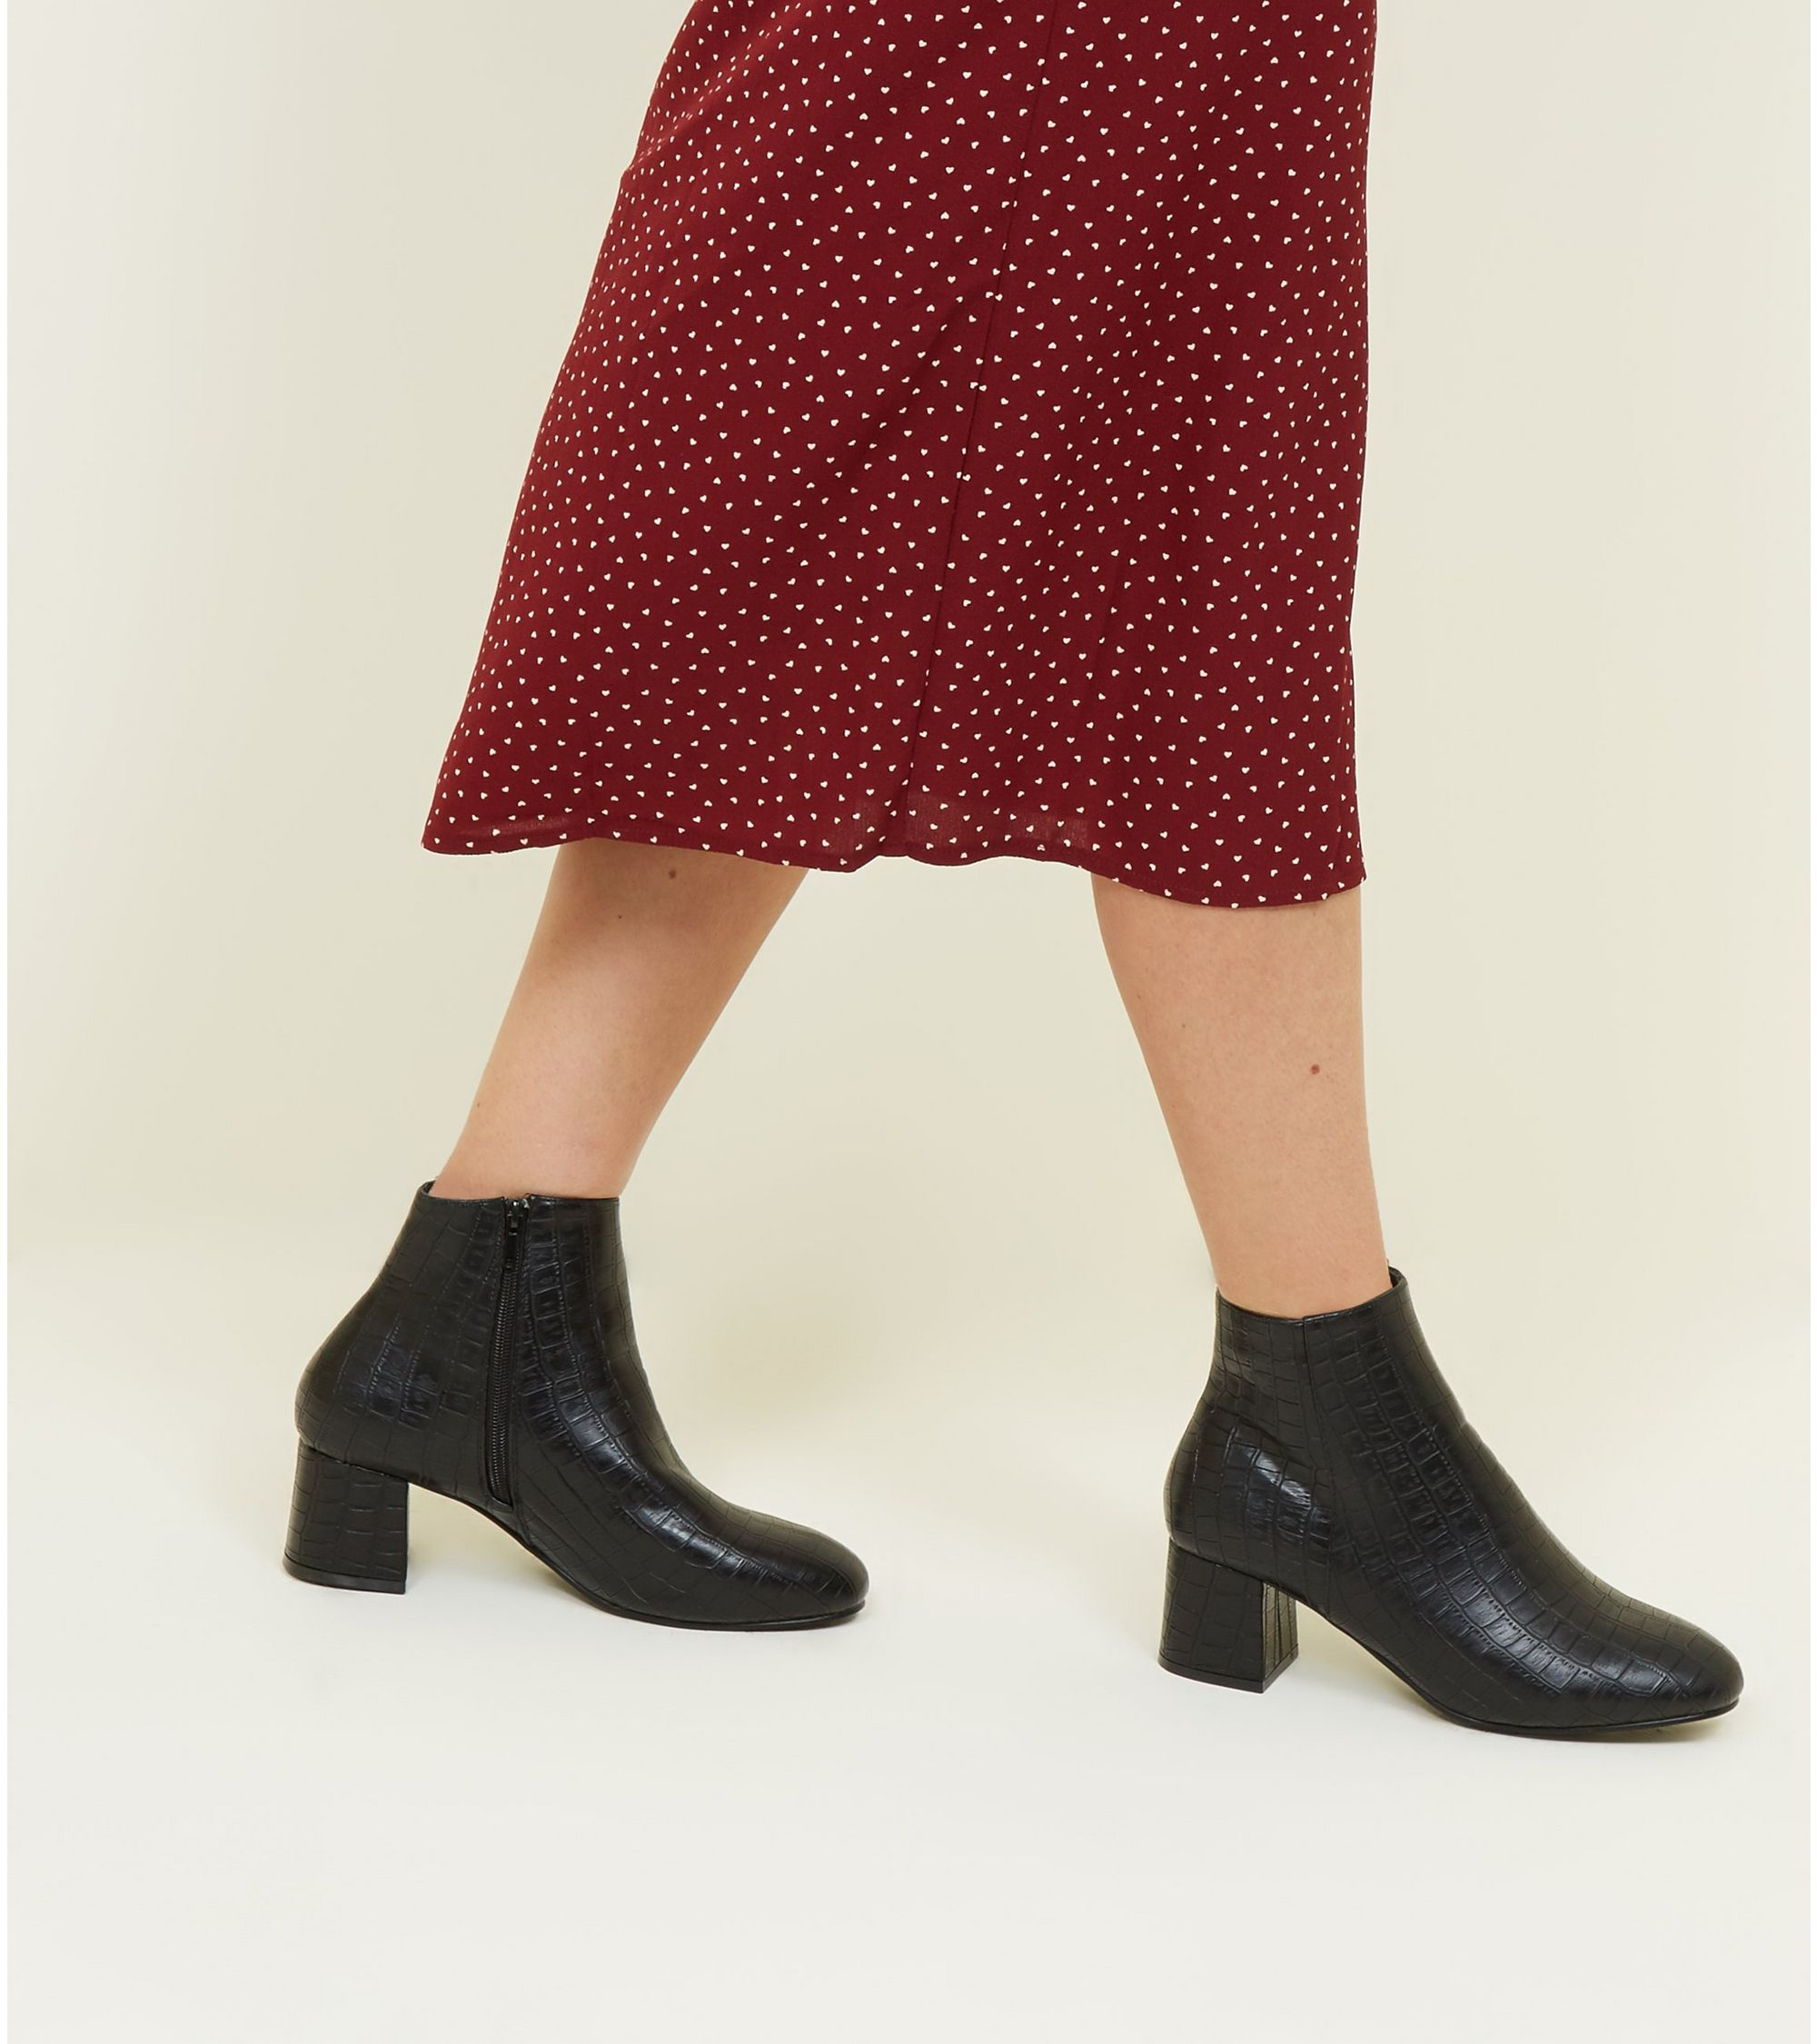 aca258c32b1a New Look Wide Fit Black Faux Croc Block Heel Ankle Boots at £27.99 ...